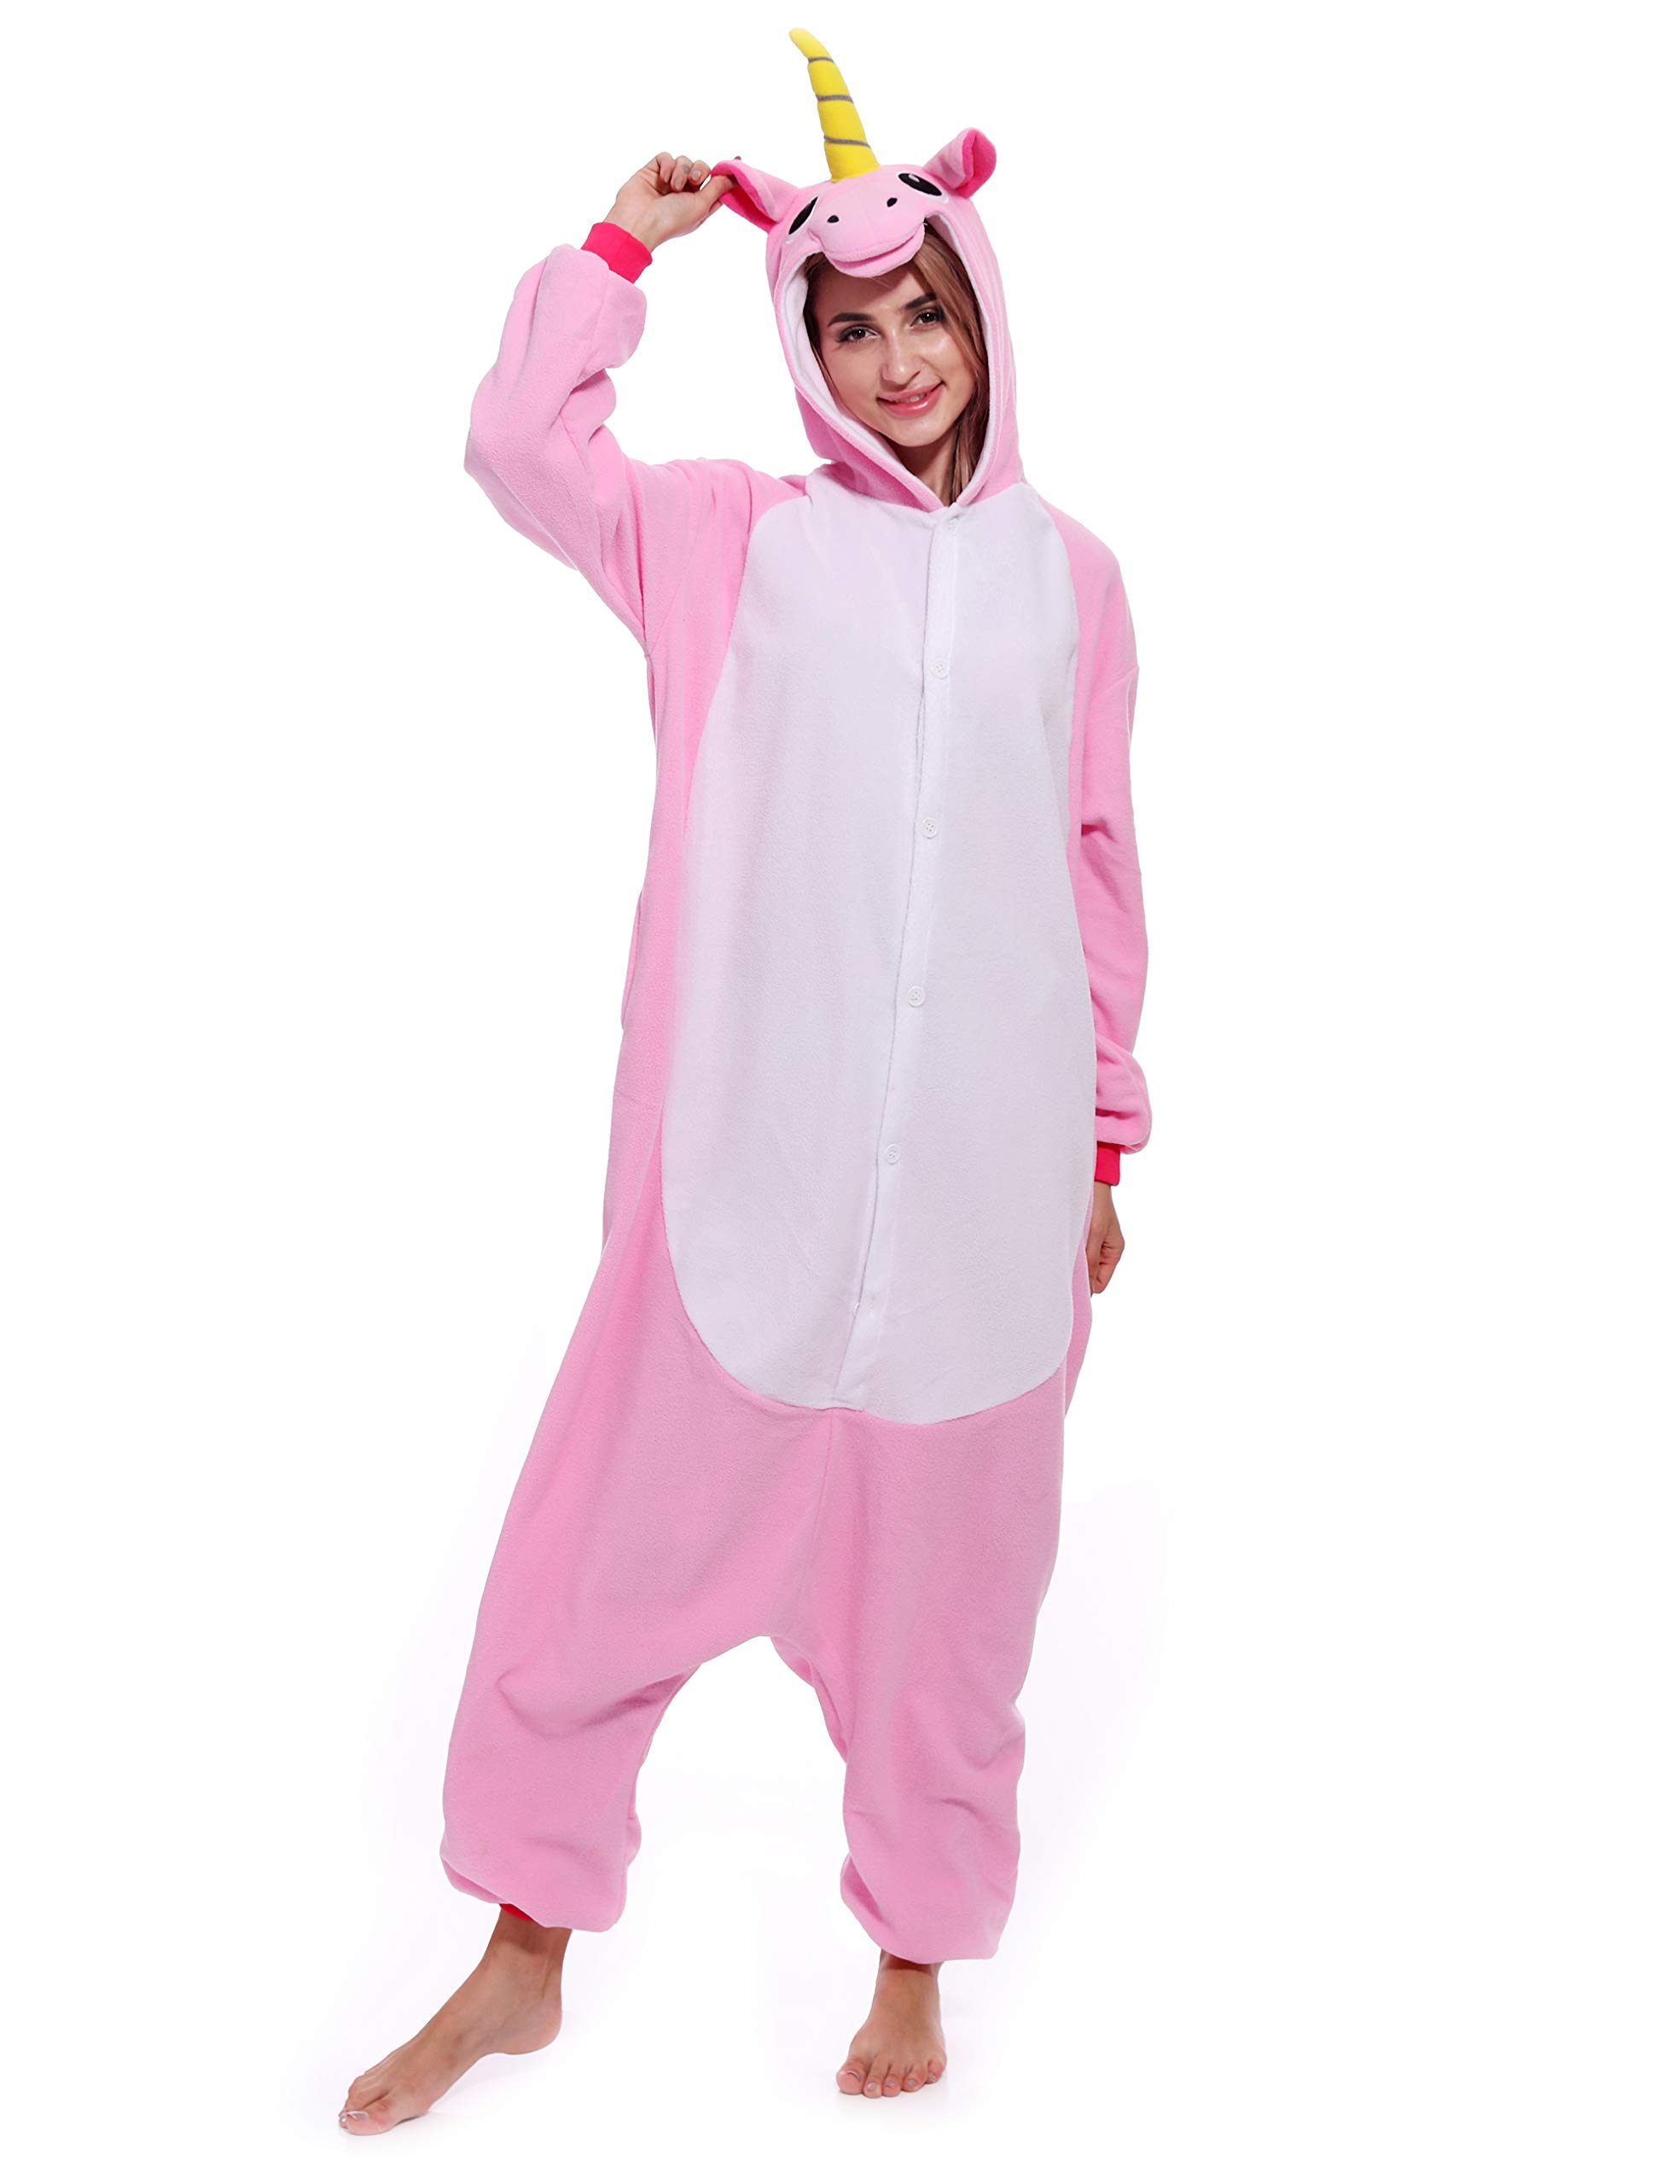 Adult Unisex Unicorn Onesie One-Piece Pajamas Animal Costume Cosplay Sleepwear  Pajamas for Women Men Teens 13b84b4a9